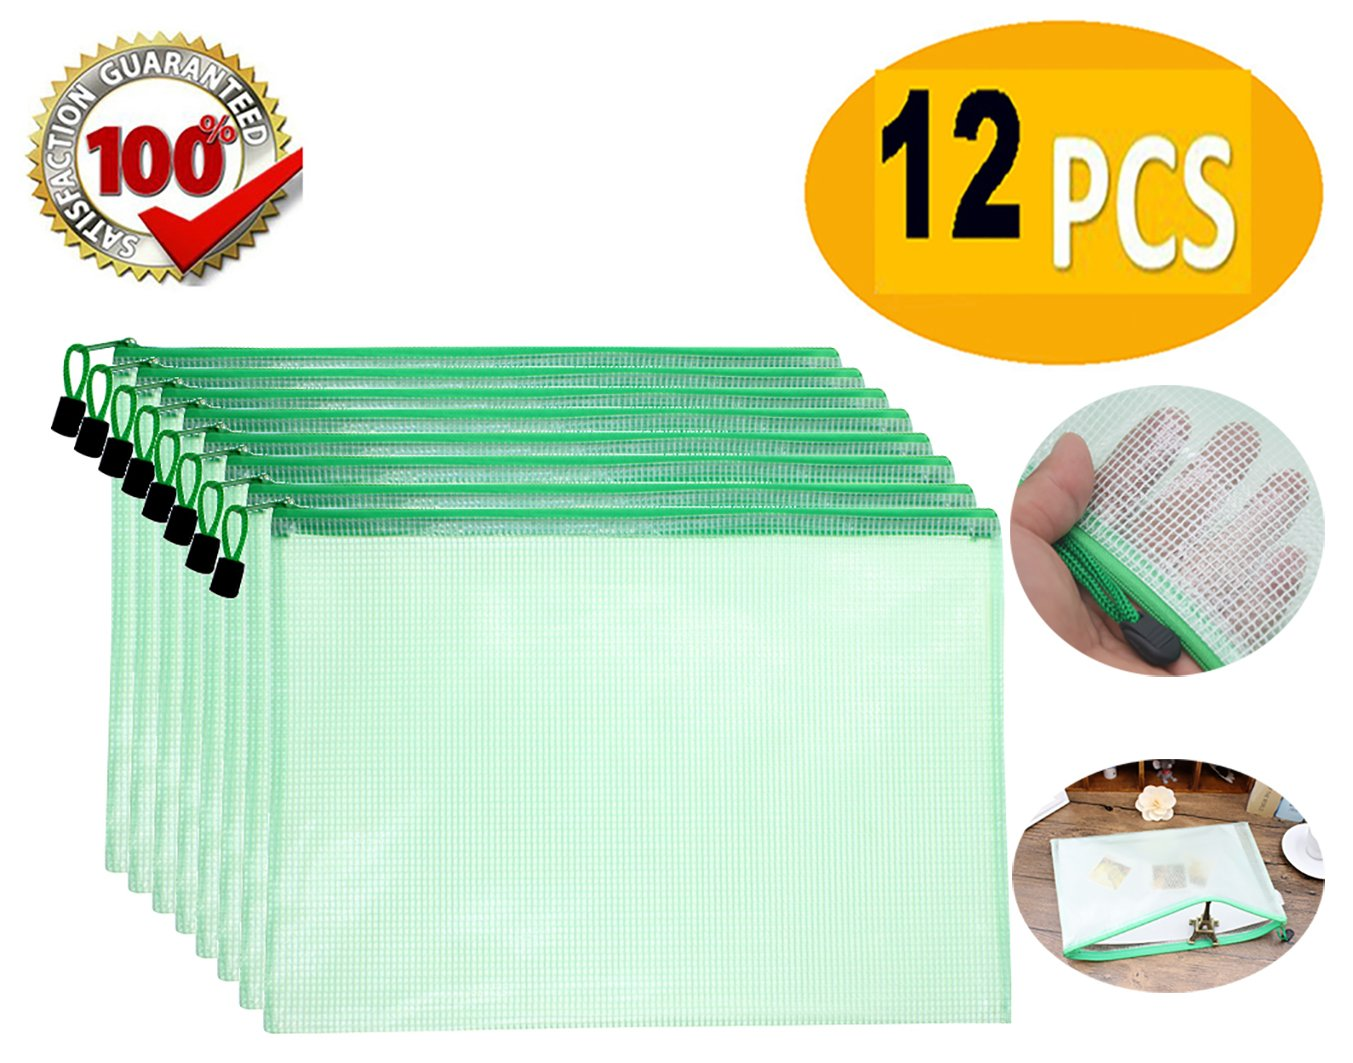 Zipper File Bags Mesh Zipper Bag Document Pouches Waterproof Poly Envelope Travel Pouch Plastic File folder Organizer Office Documents Bag A4 Paper Size Plastic with Zipper Closure -12 Pcs (Green) by SLanC (Image #1)